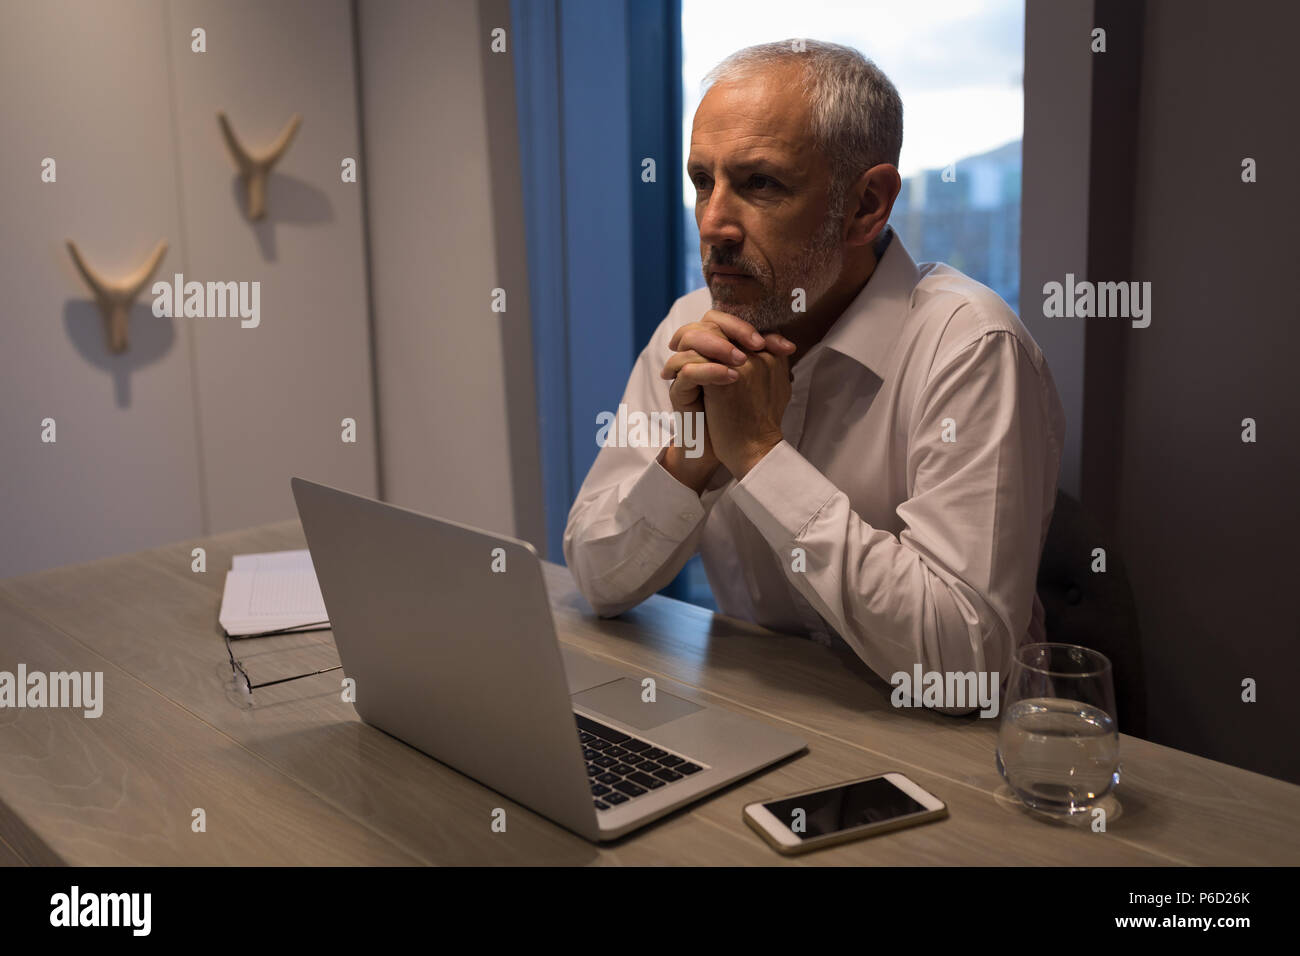 Businessman thinking deeply while sitting at desk - Stock Image